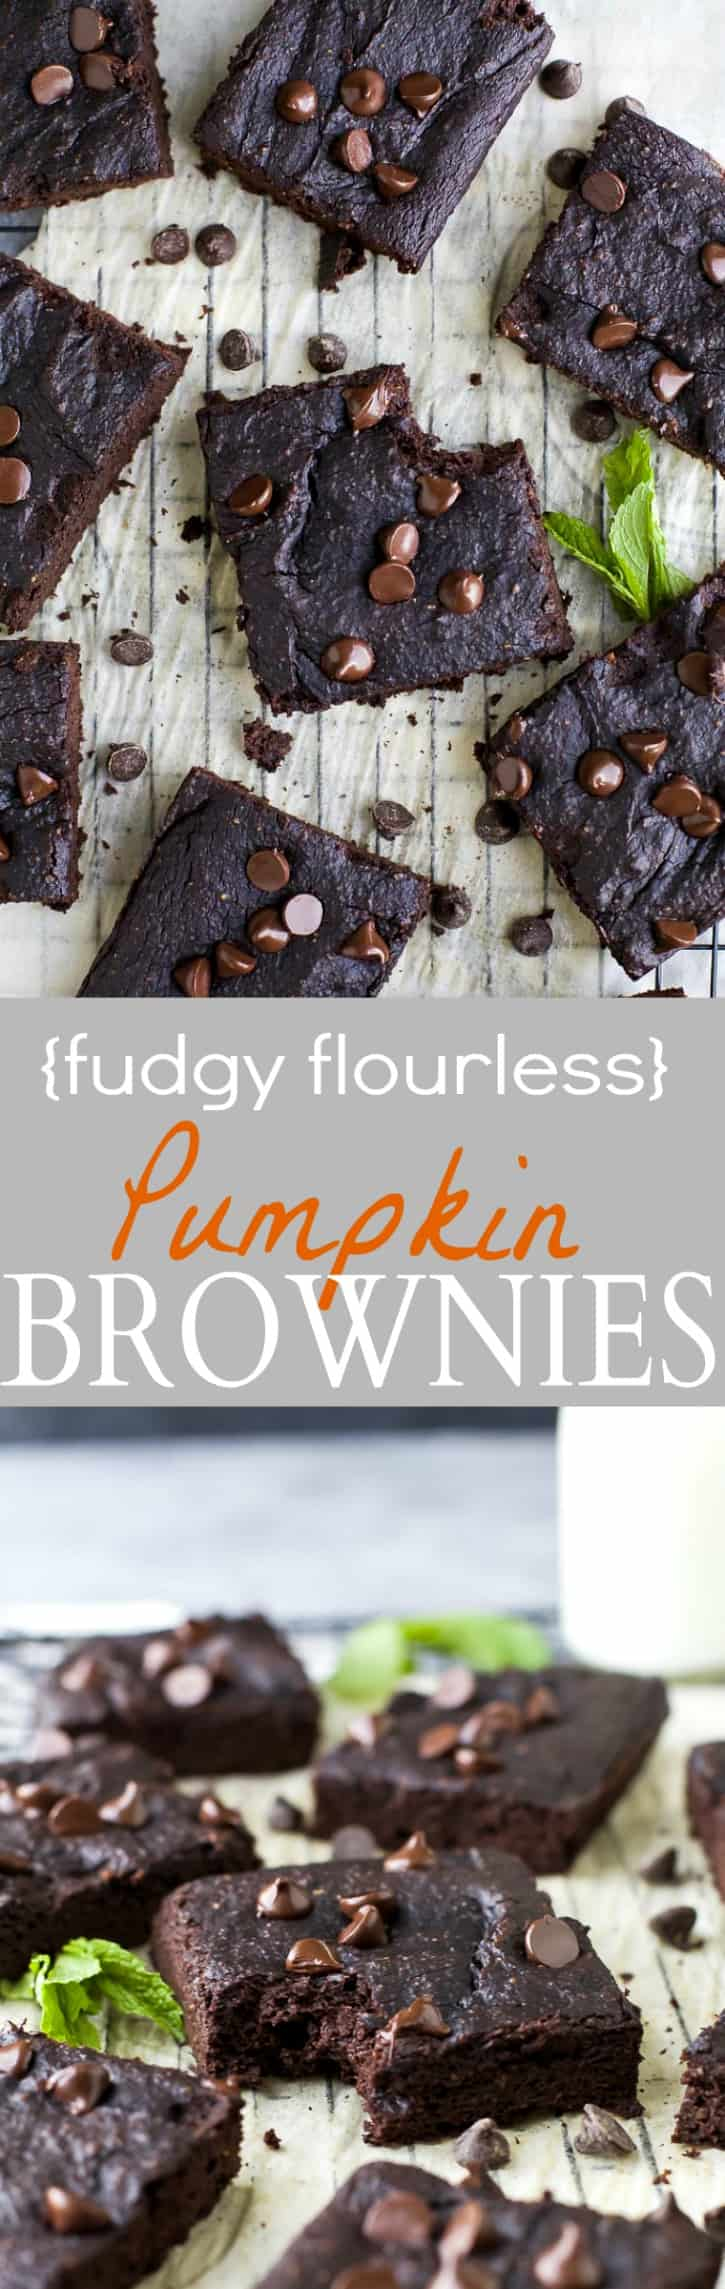 Fudgy Flourless Pumpkin Brownies recipe collage